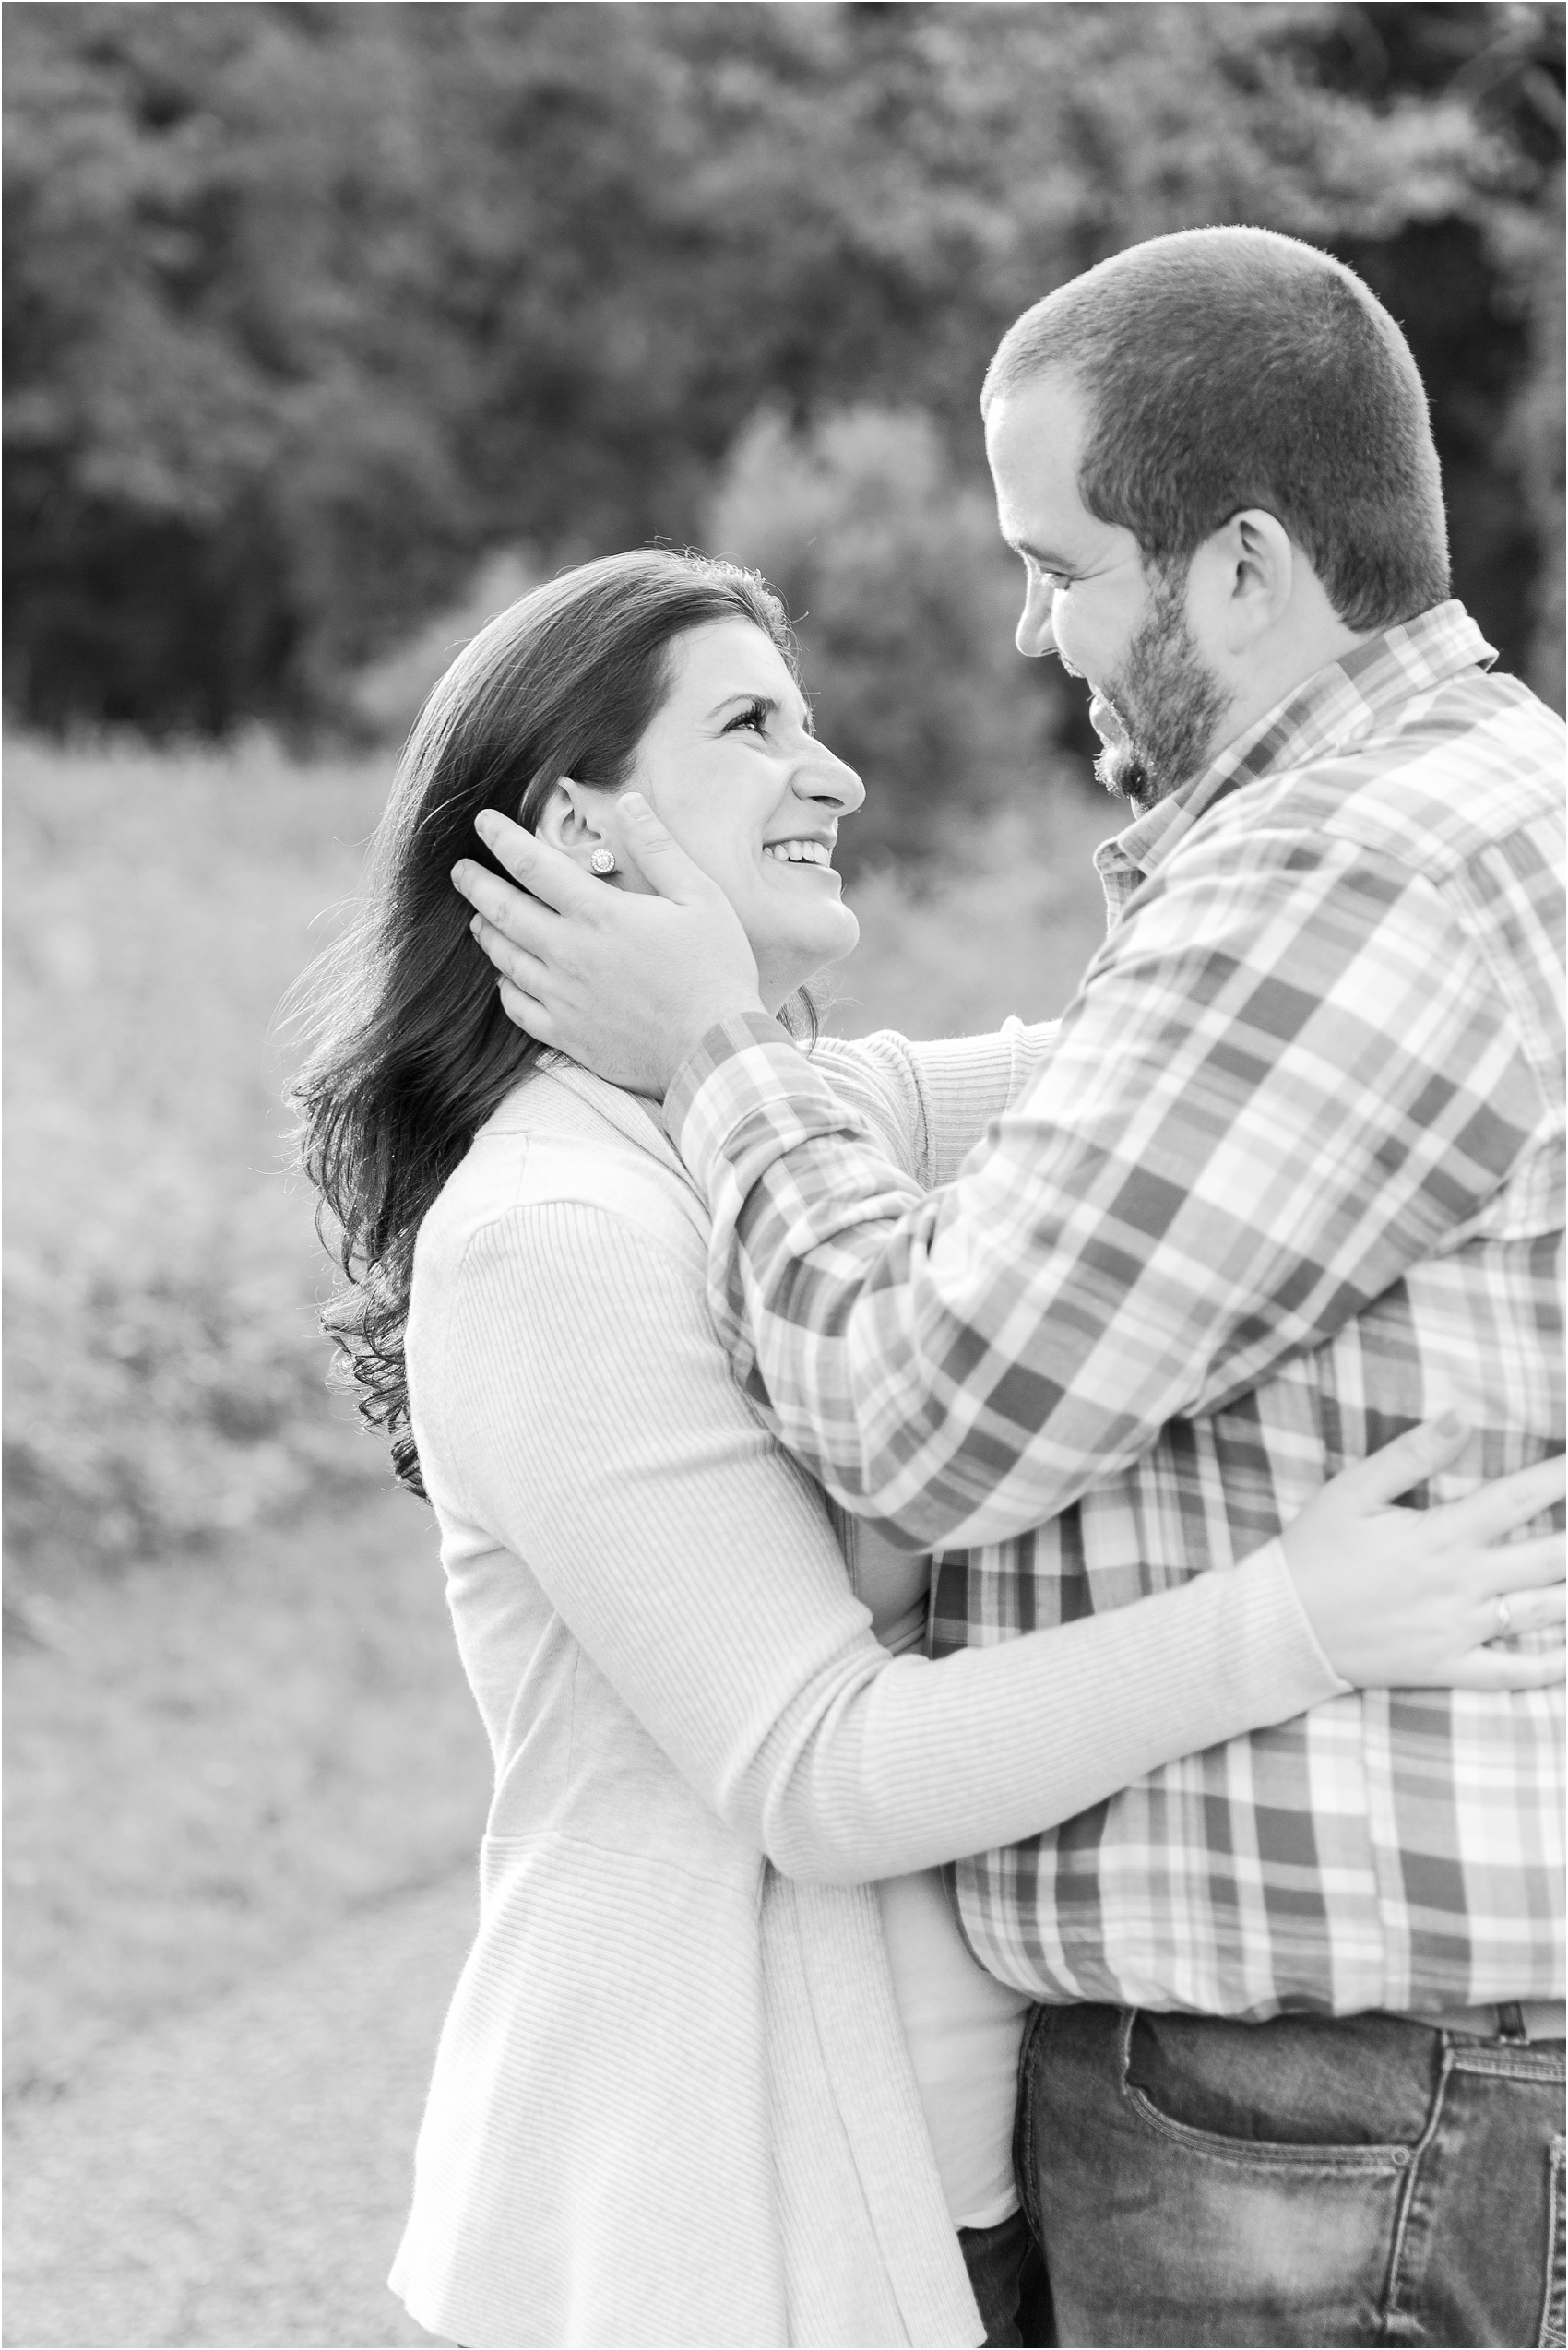 candid-romantic-summer-engagement-photos-at-hidden-lake-gardens-and-black-fire-winery-in-tipton-mi-by-courtney-carolyn-photography_0040.jpg